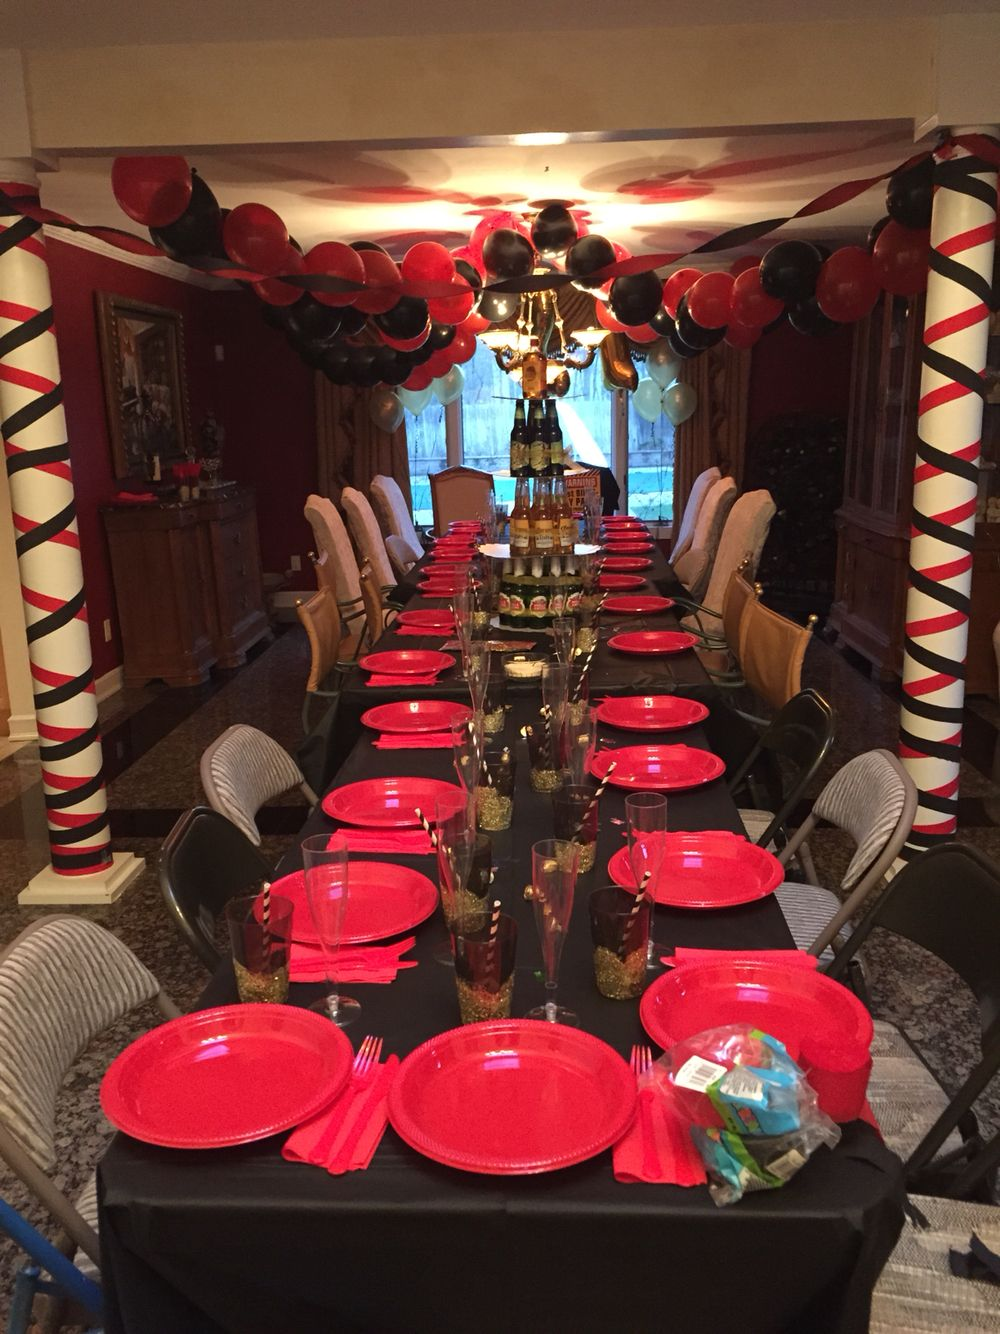 Surprise 21st Birthday Party For My Boyfriend 21 Boys Men Male CheersAndBeers Birthdayparty Red Black Gold Decorations